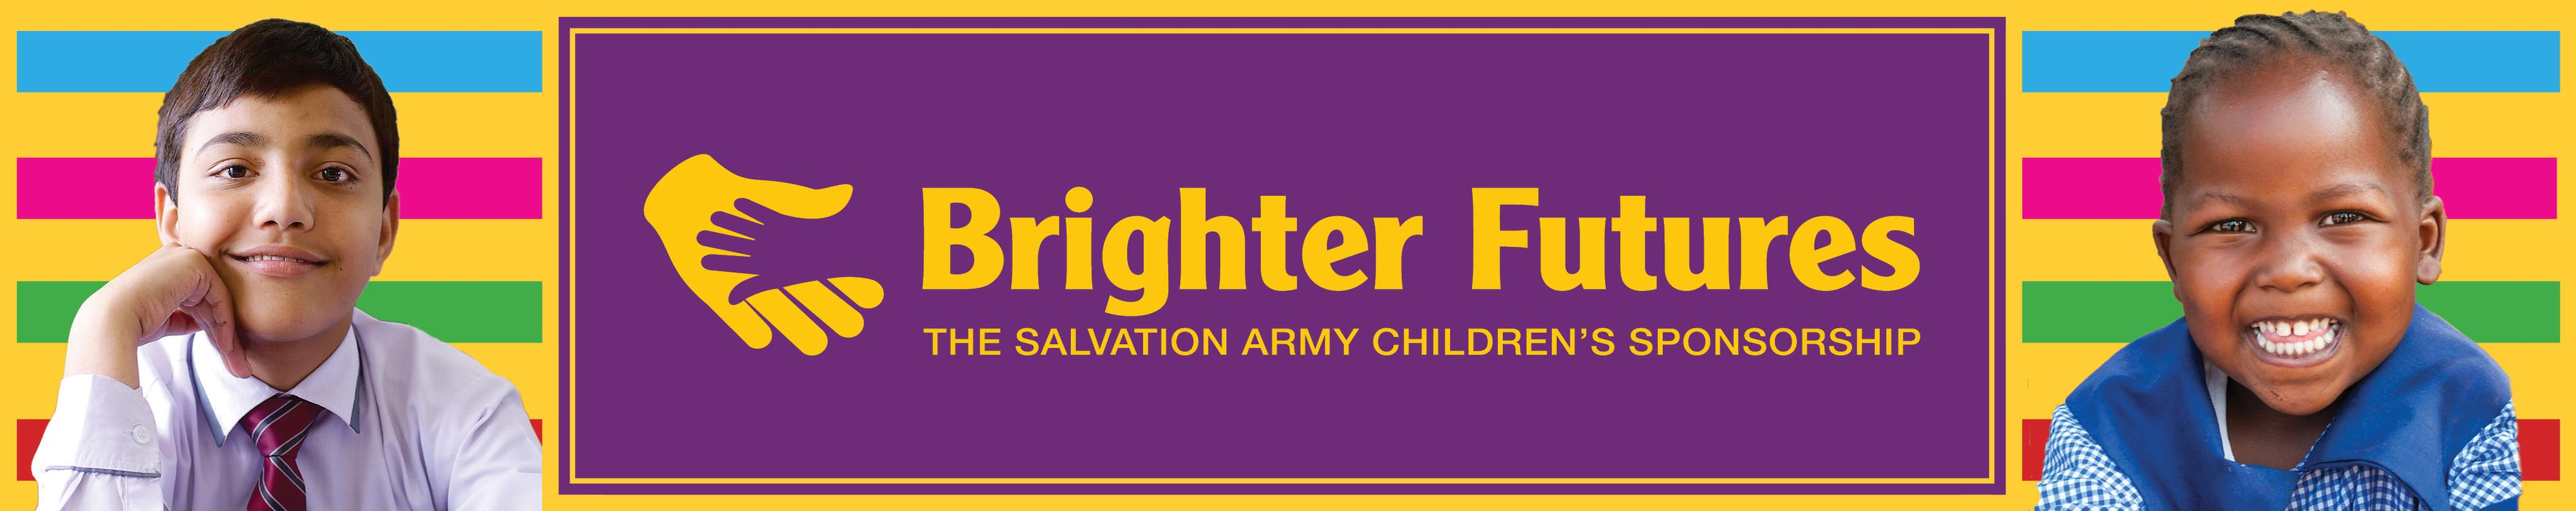 Brighter Futures Banner